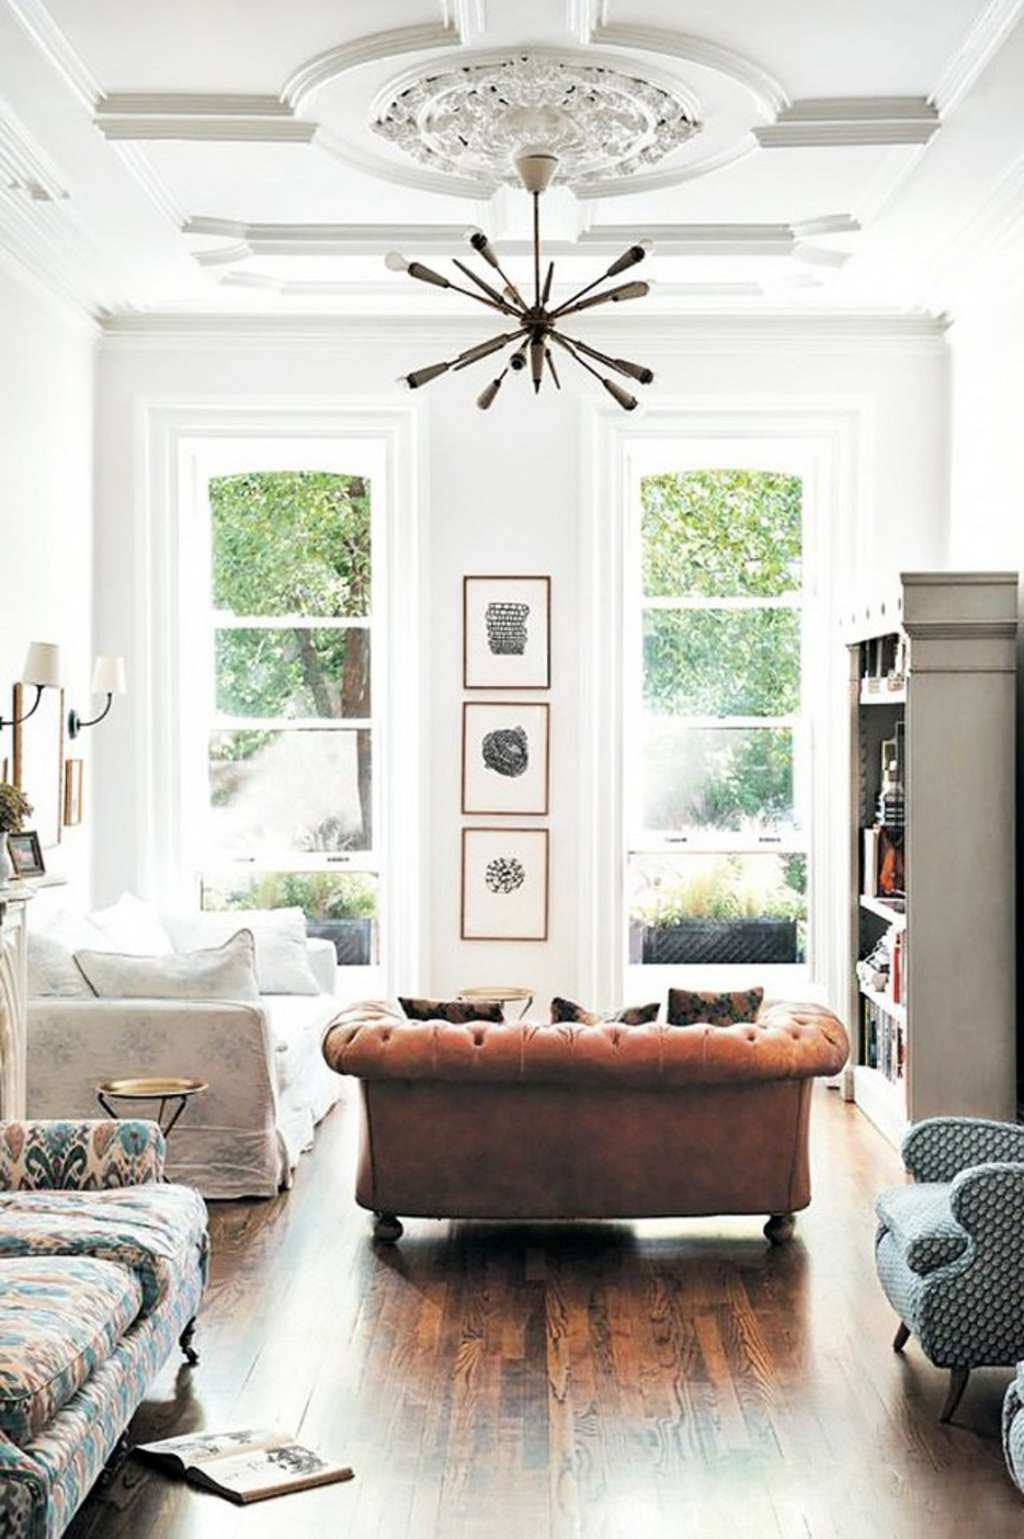 5 Things You Can Do to Customize Your Living Room Fast